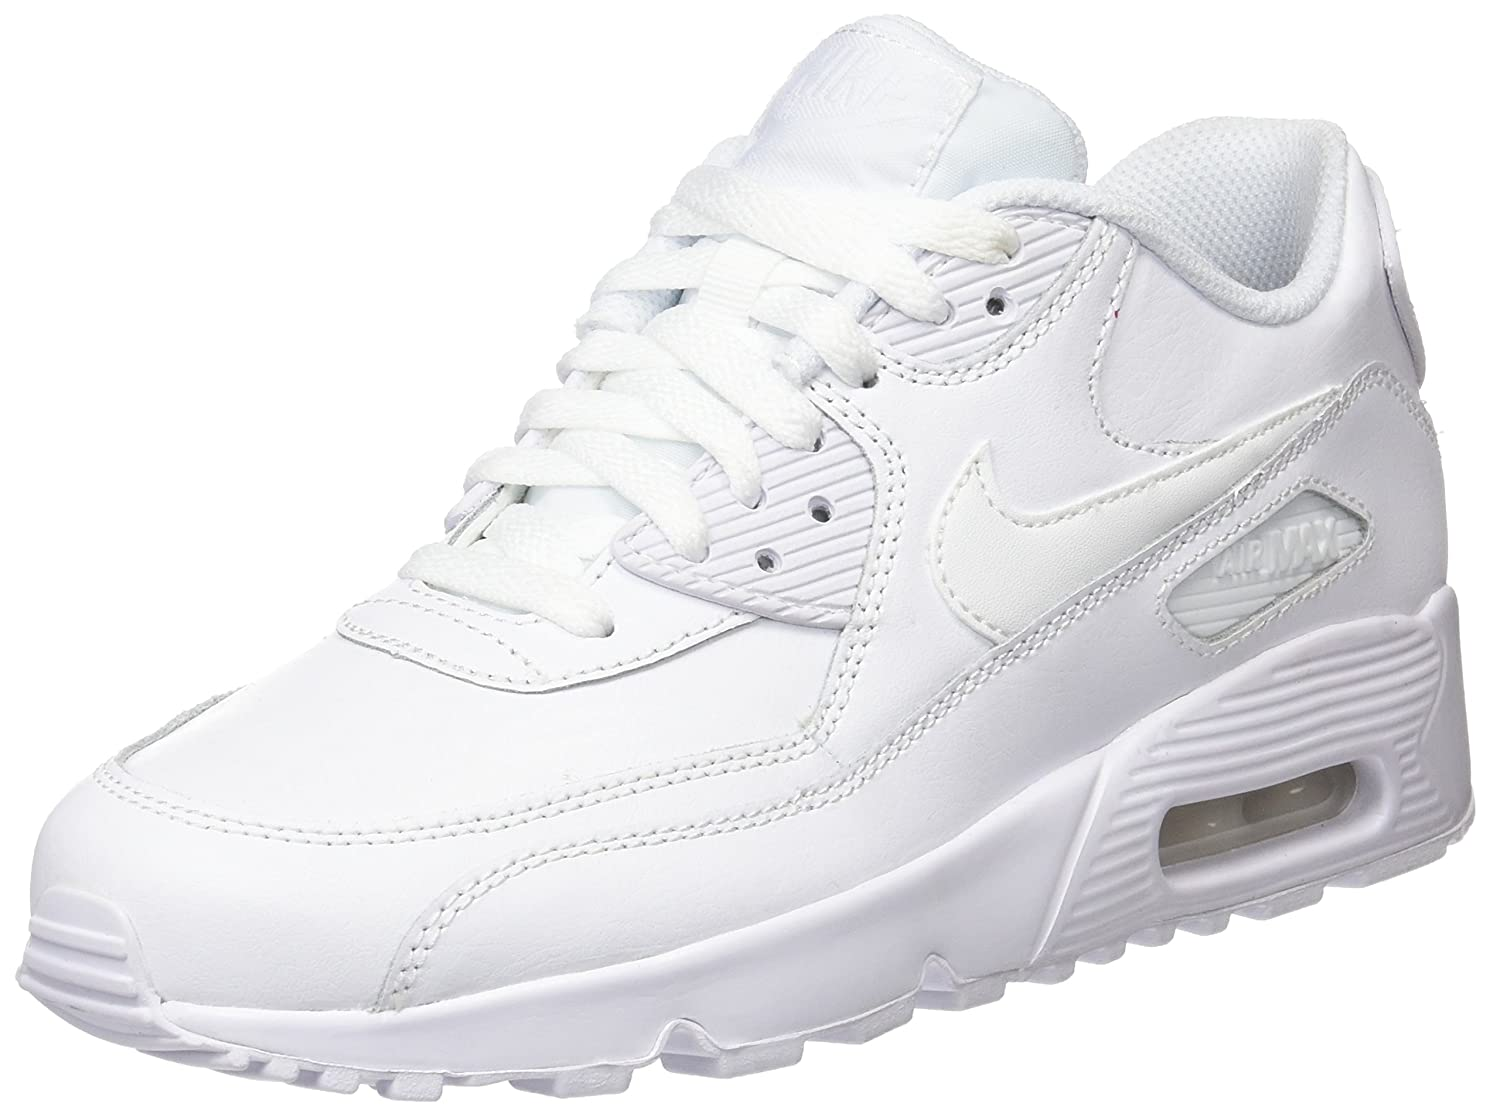 NIKE Kids Air Max 90 LTR (GS) Running Shoe B000VNQ564 3.5 M US Big Kid|White/White